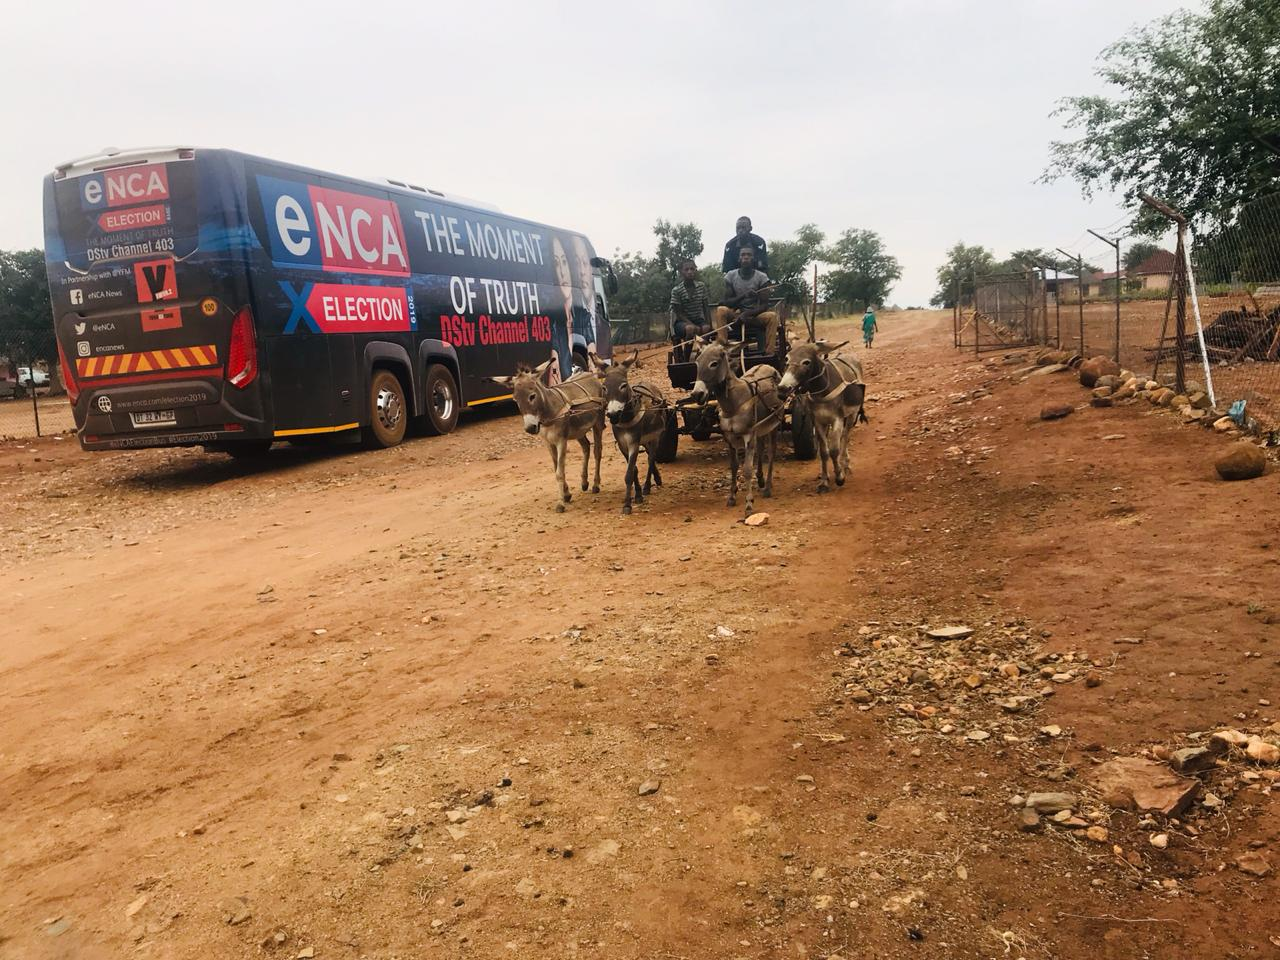 11 April 2019 - The eNCA Election Bus team is on the ground in Giyani.